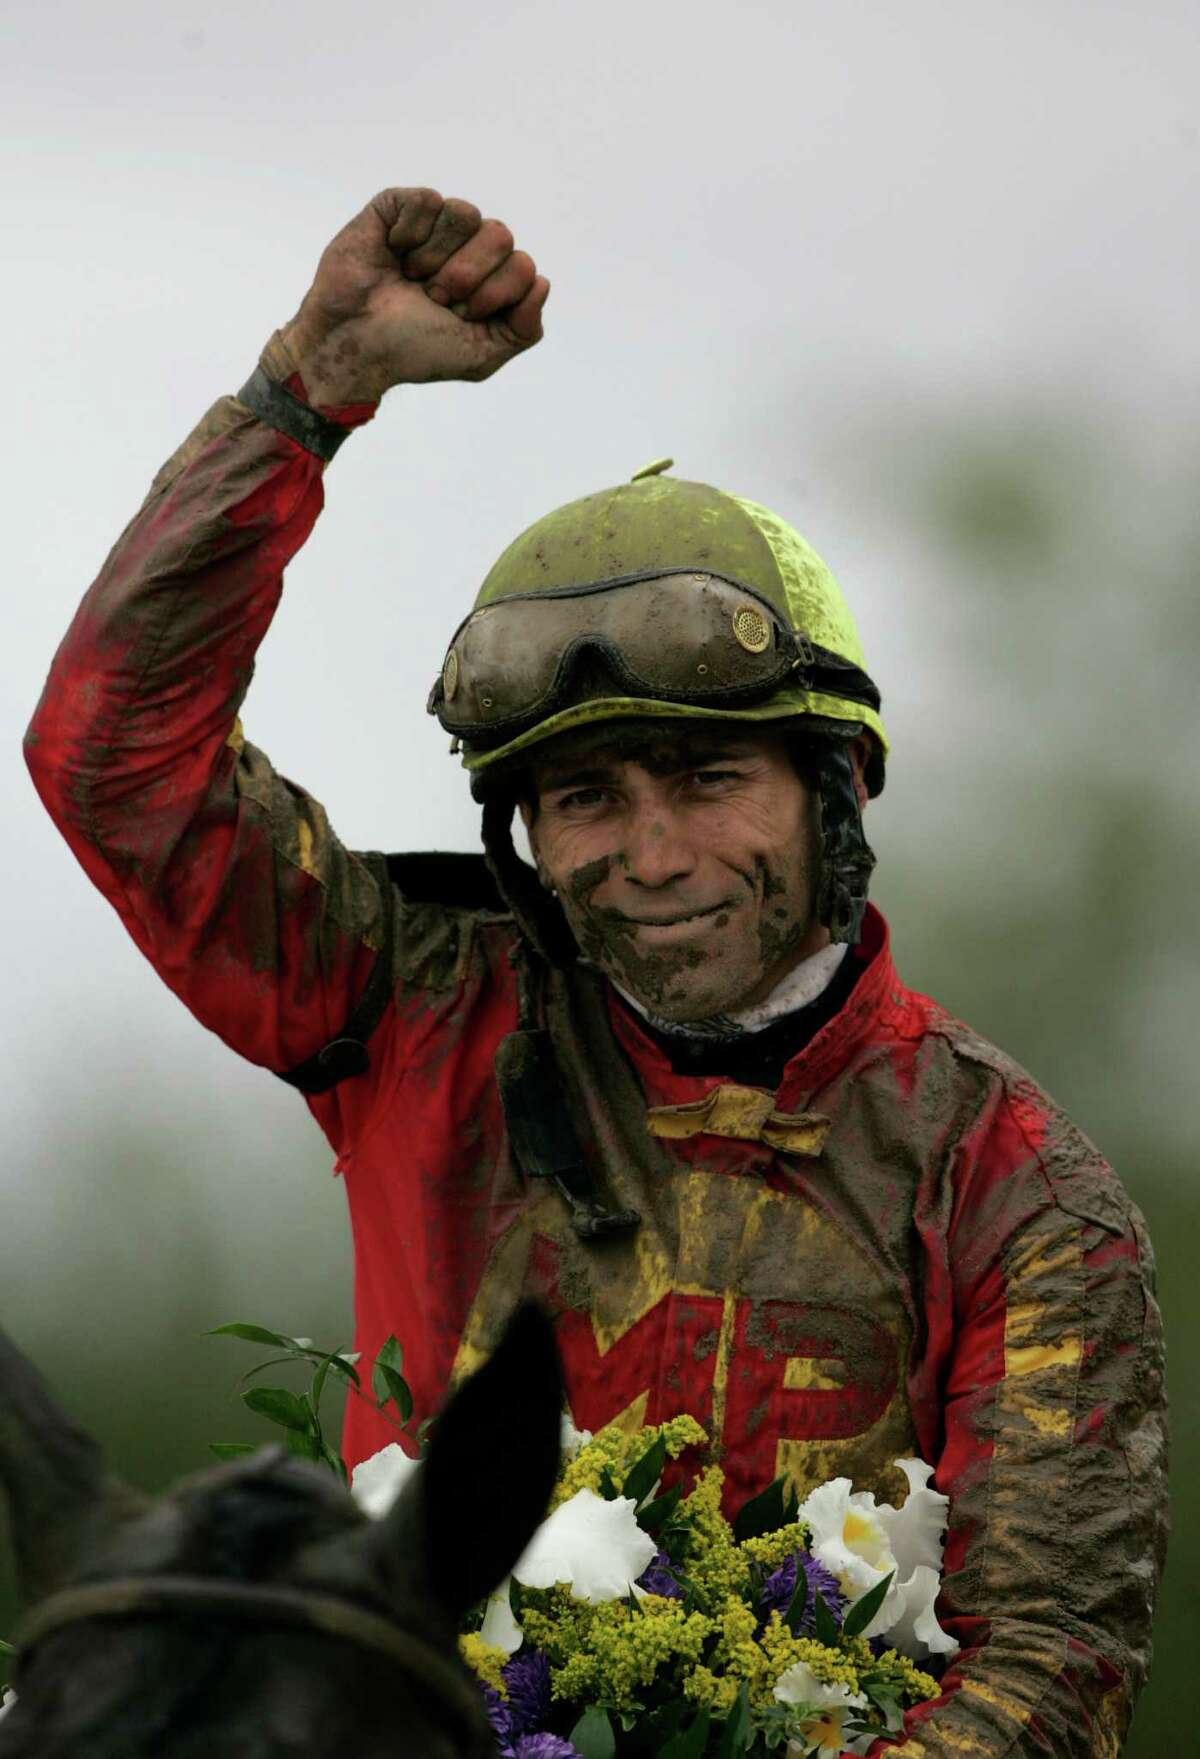 FILE - In this Oct. 27, 2007, file photo, jockey Garret Gomez celebrates aboard Midnight Lute after the Breeders Cup Sprint horse race in Oceanport, N.J. Jockeys Ramon Dominguez, Victor Espinoza, Garrett Gomez, and Craig Perret are among the 10 finalists on the National Museum of Racing Hall of Fame's ballot. (AP Photo/Mike Groll, File) ORG XMIT: NY173